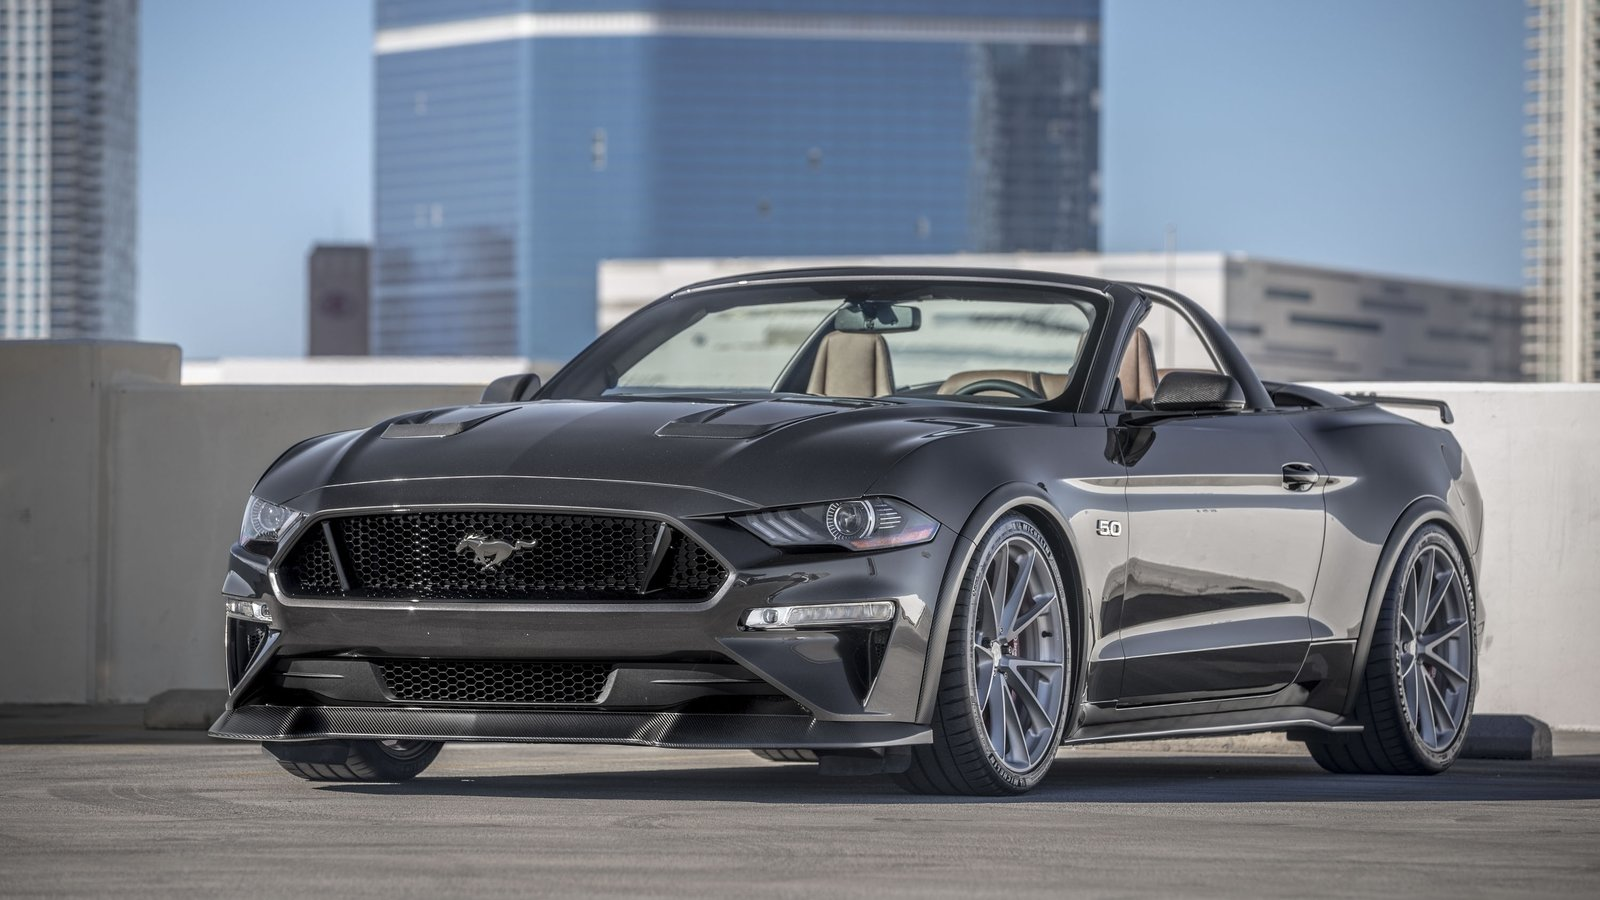 2017 Ford Mustang Gt Convertible By Speedkore Performance